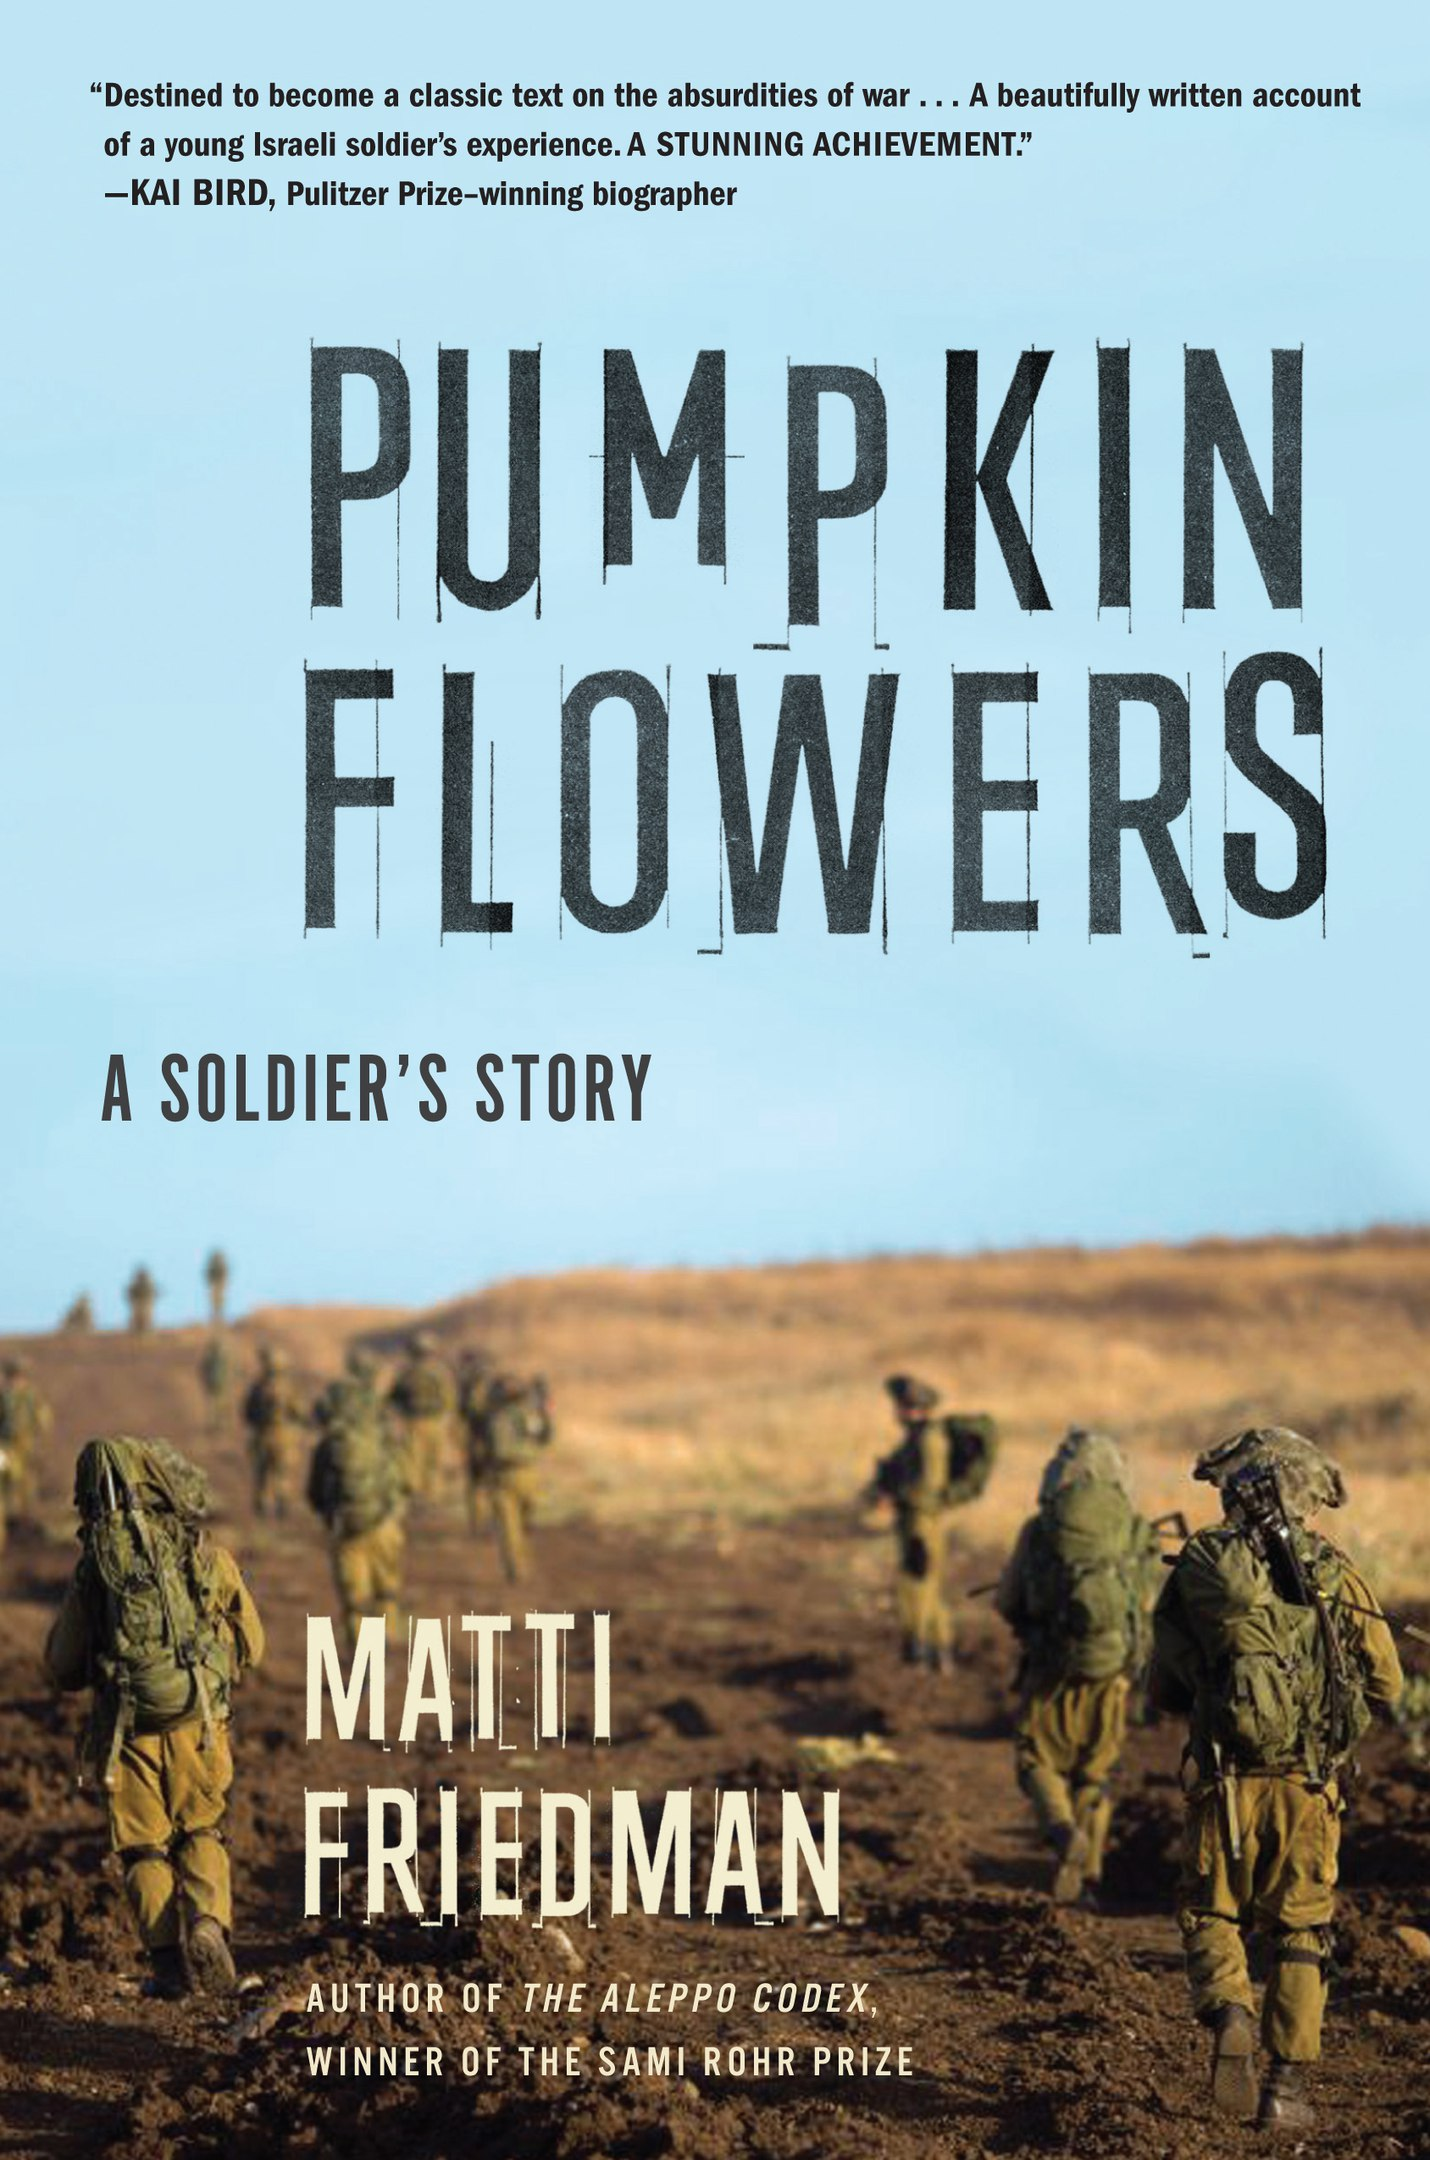 Matti Friedman – Pumpkinflowers